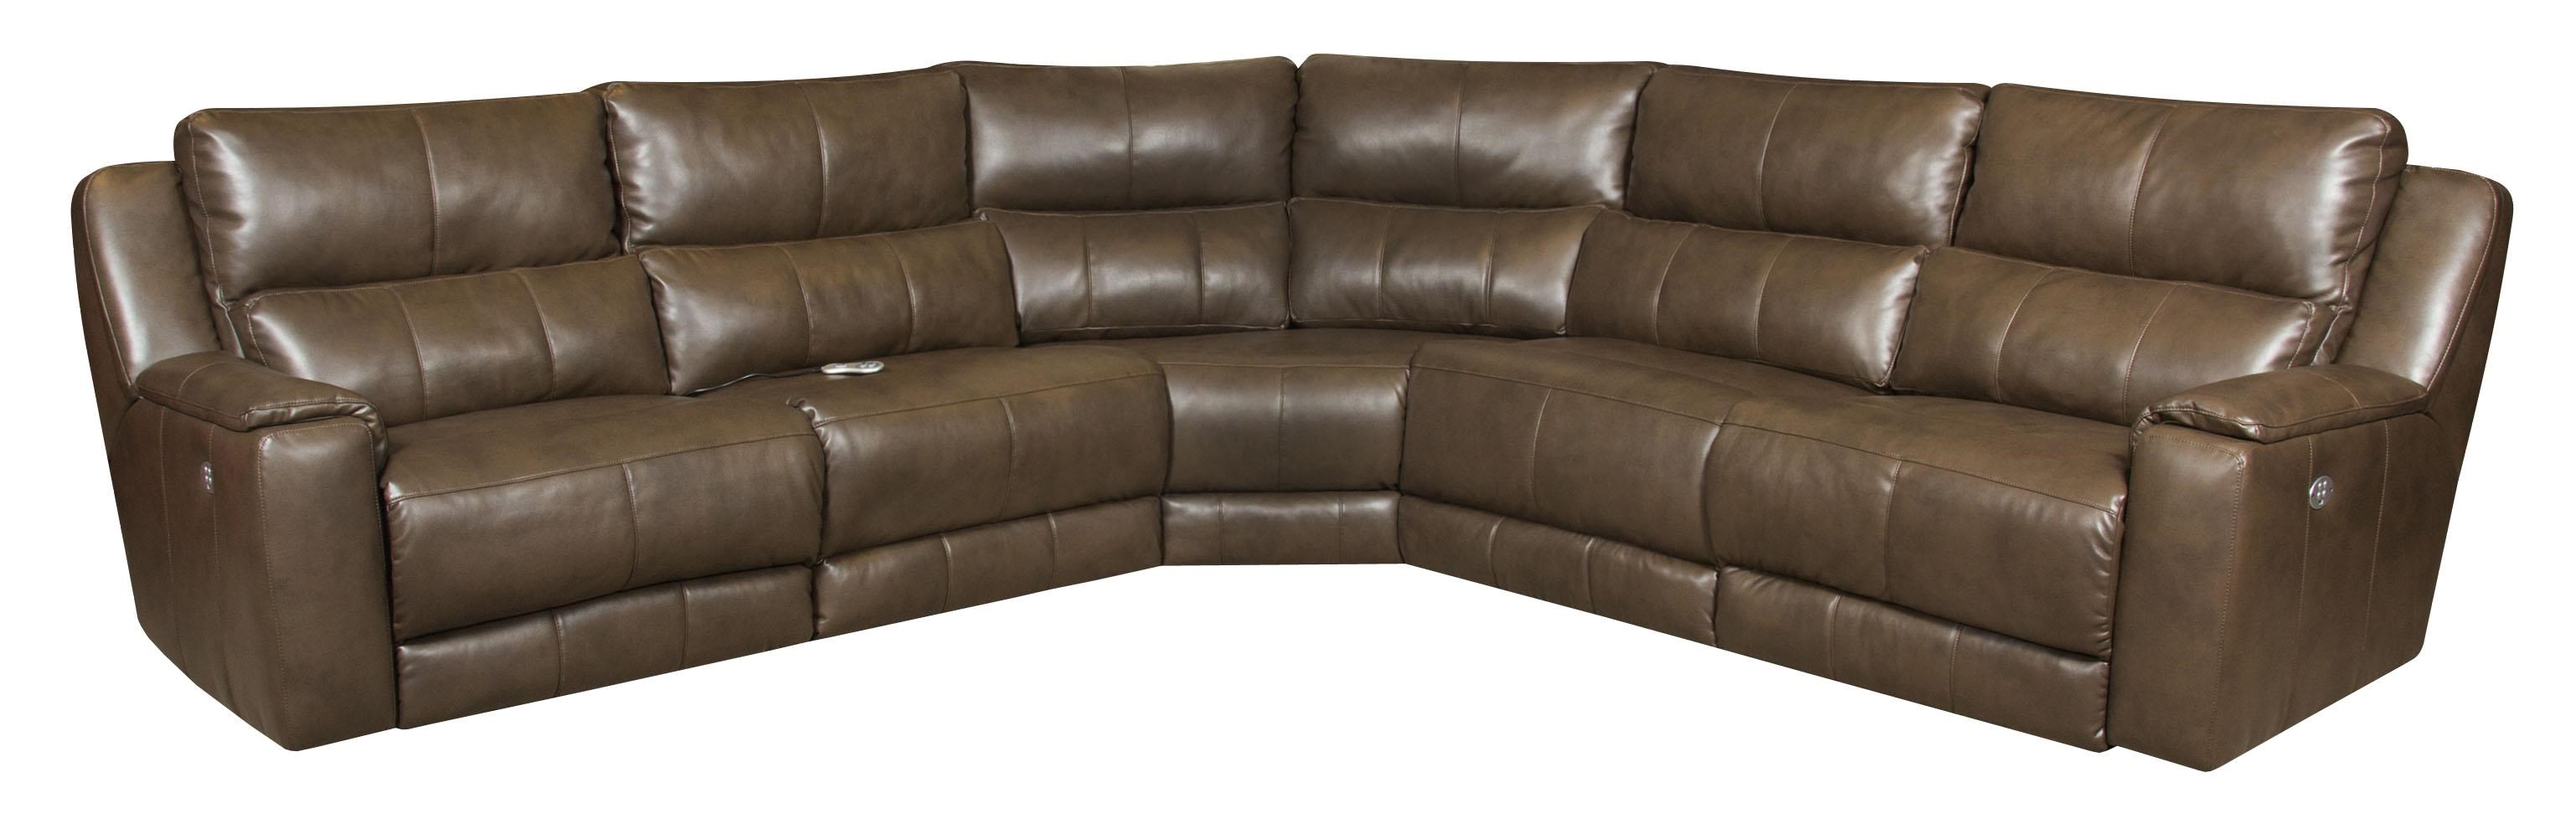 Southern Motion Dazzle Reclining Sectional with Power Headrests : Hudsonu0026#39;s Furniture : Reclining ...